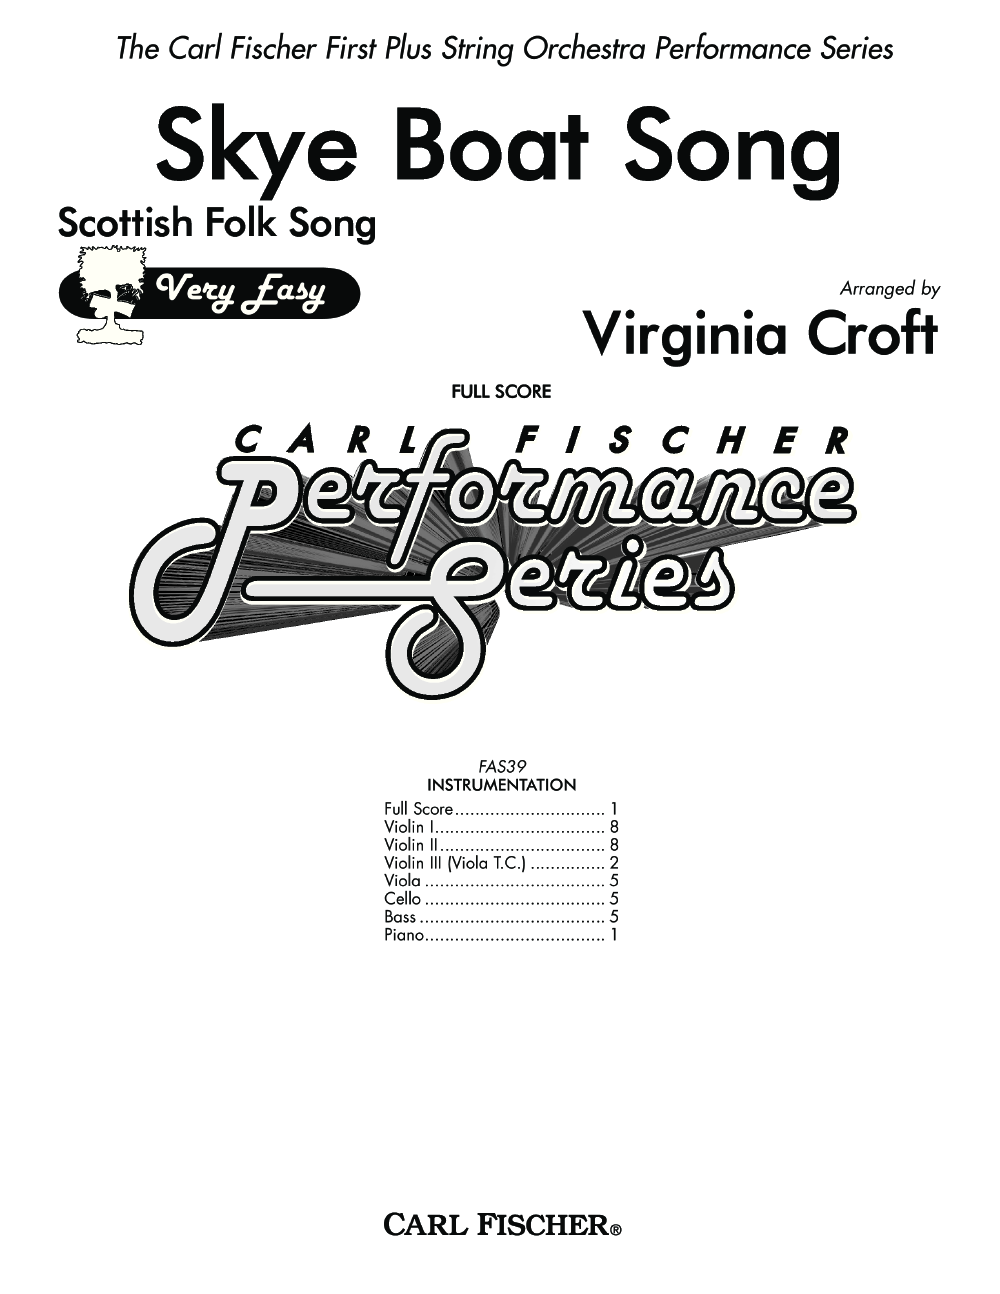 Skye Boat Song arr. Virginia Croft| J.W. Pepper Sheet Music